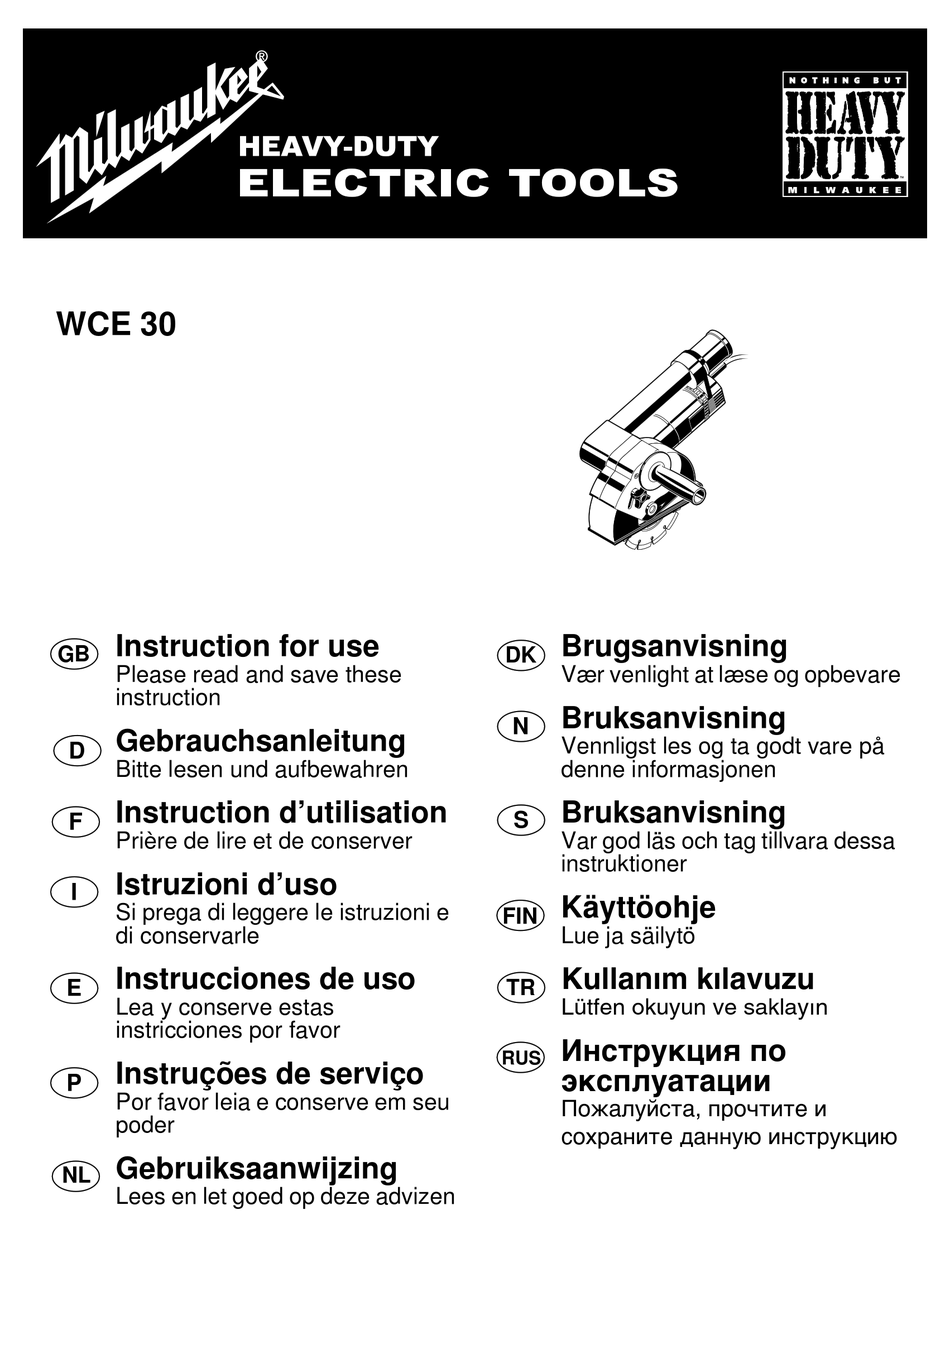 MILWAUKEE WCE 30 INSTRUCTIONS FOR USE MANUAL Pdf Download